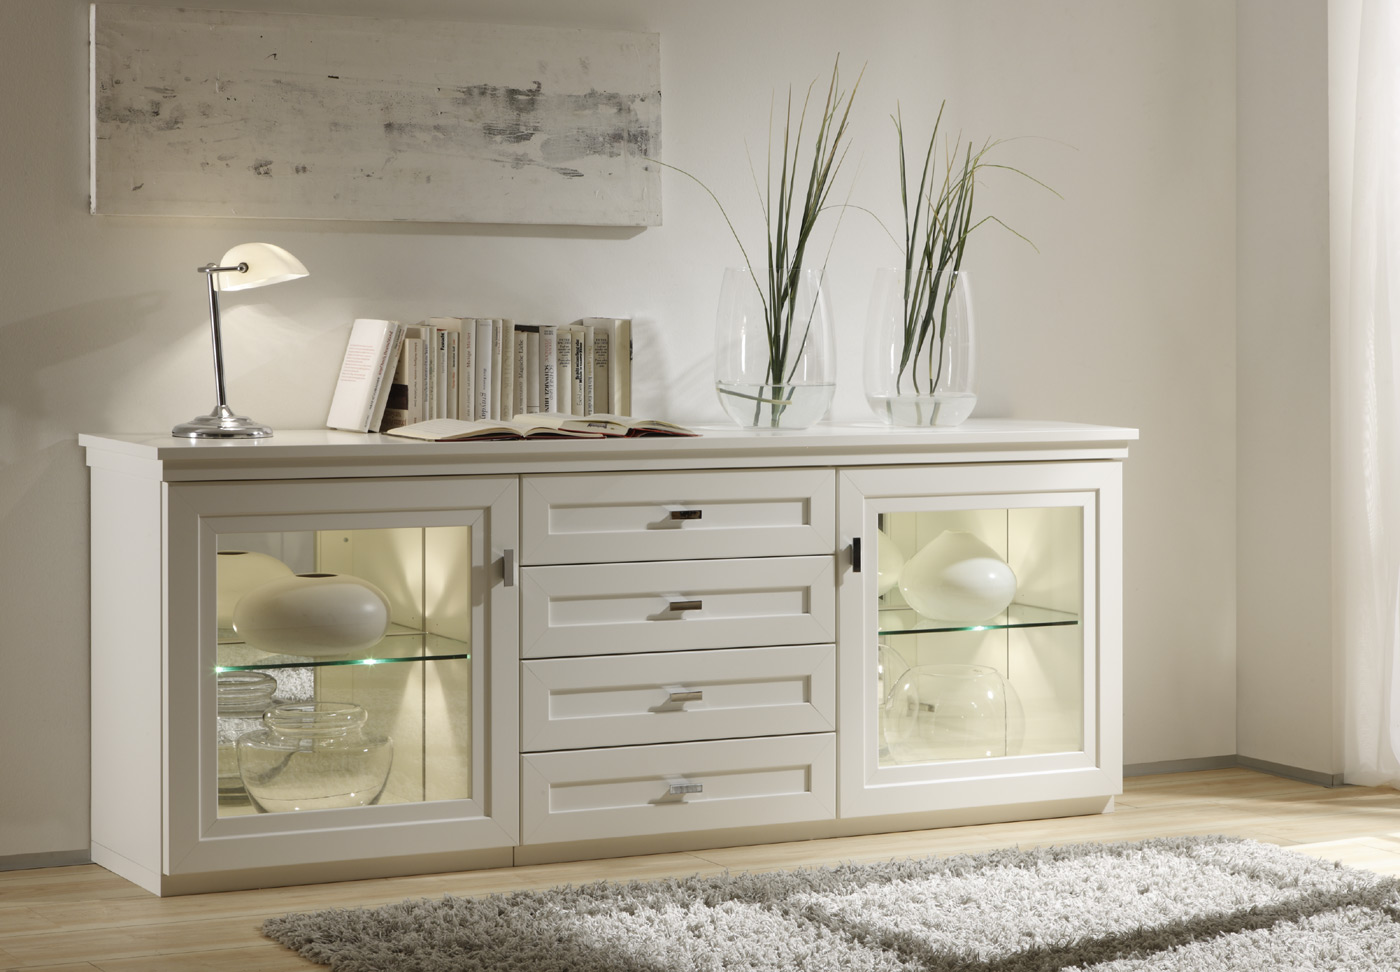 kent wehrsdorfer sideboard kent ke 79 individuell planen m belmeile24. Black Bedroom Furniture Sets. Home Design Ideas